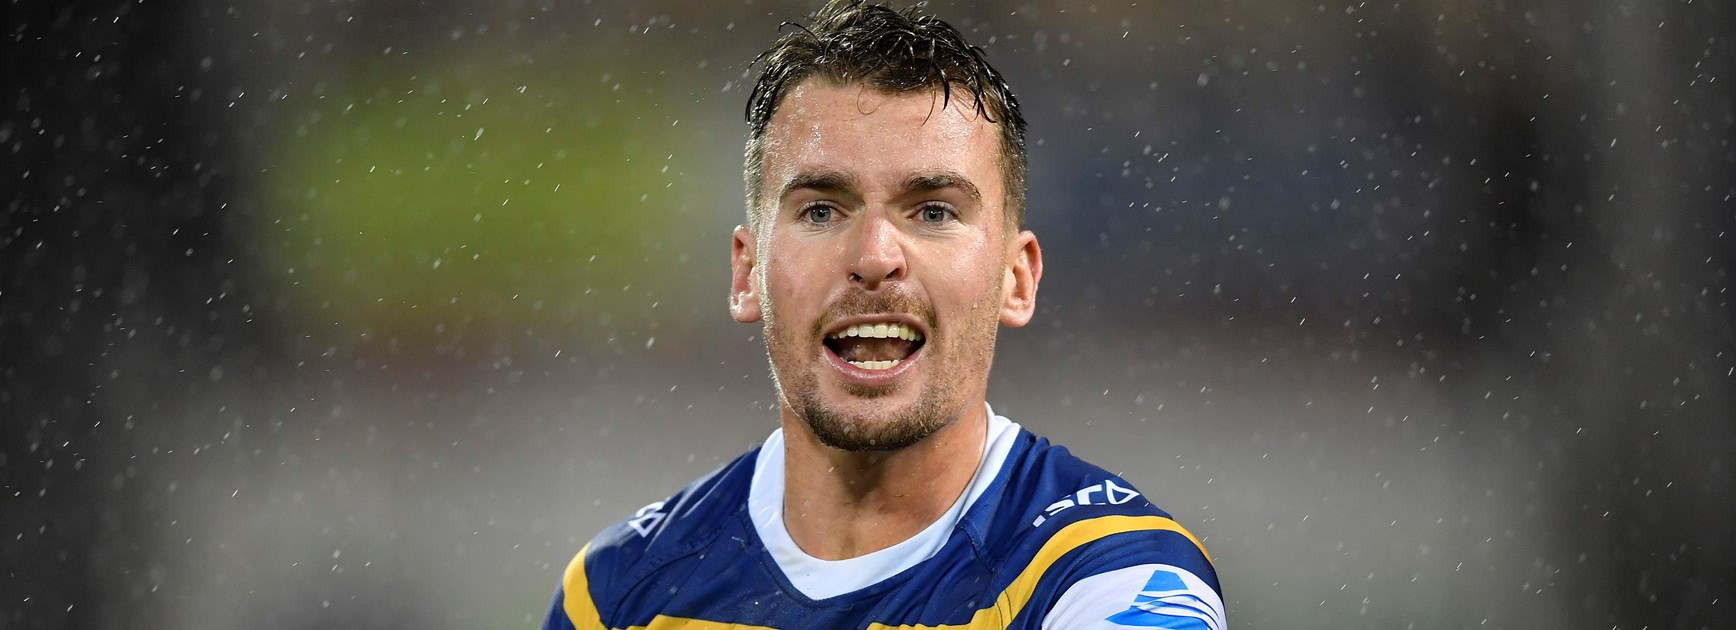 Eels fullback Clint Gutherson.